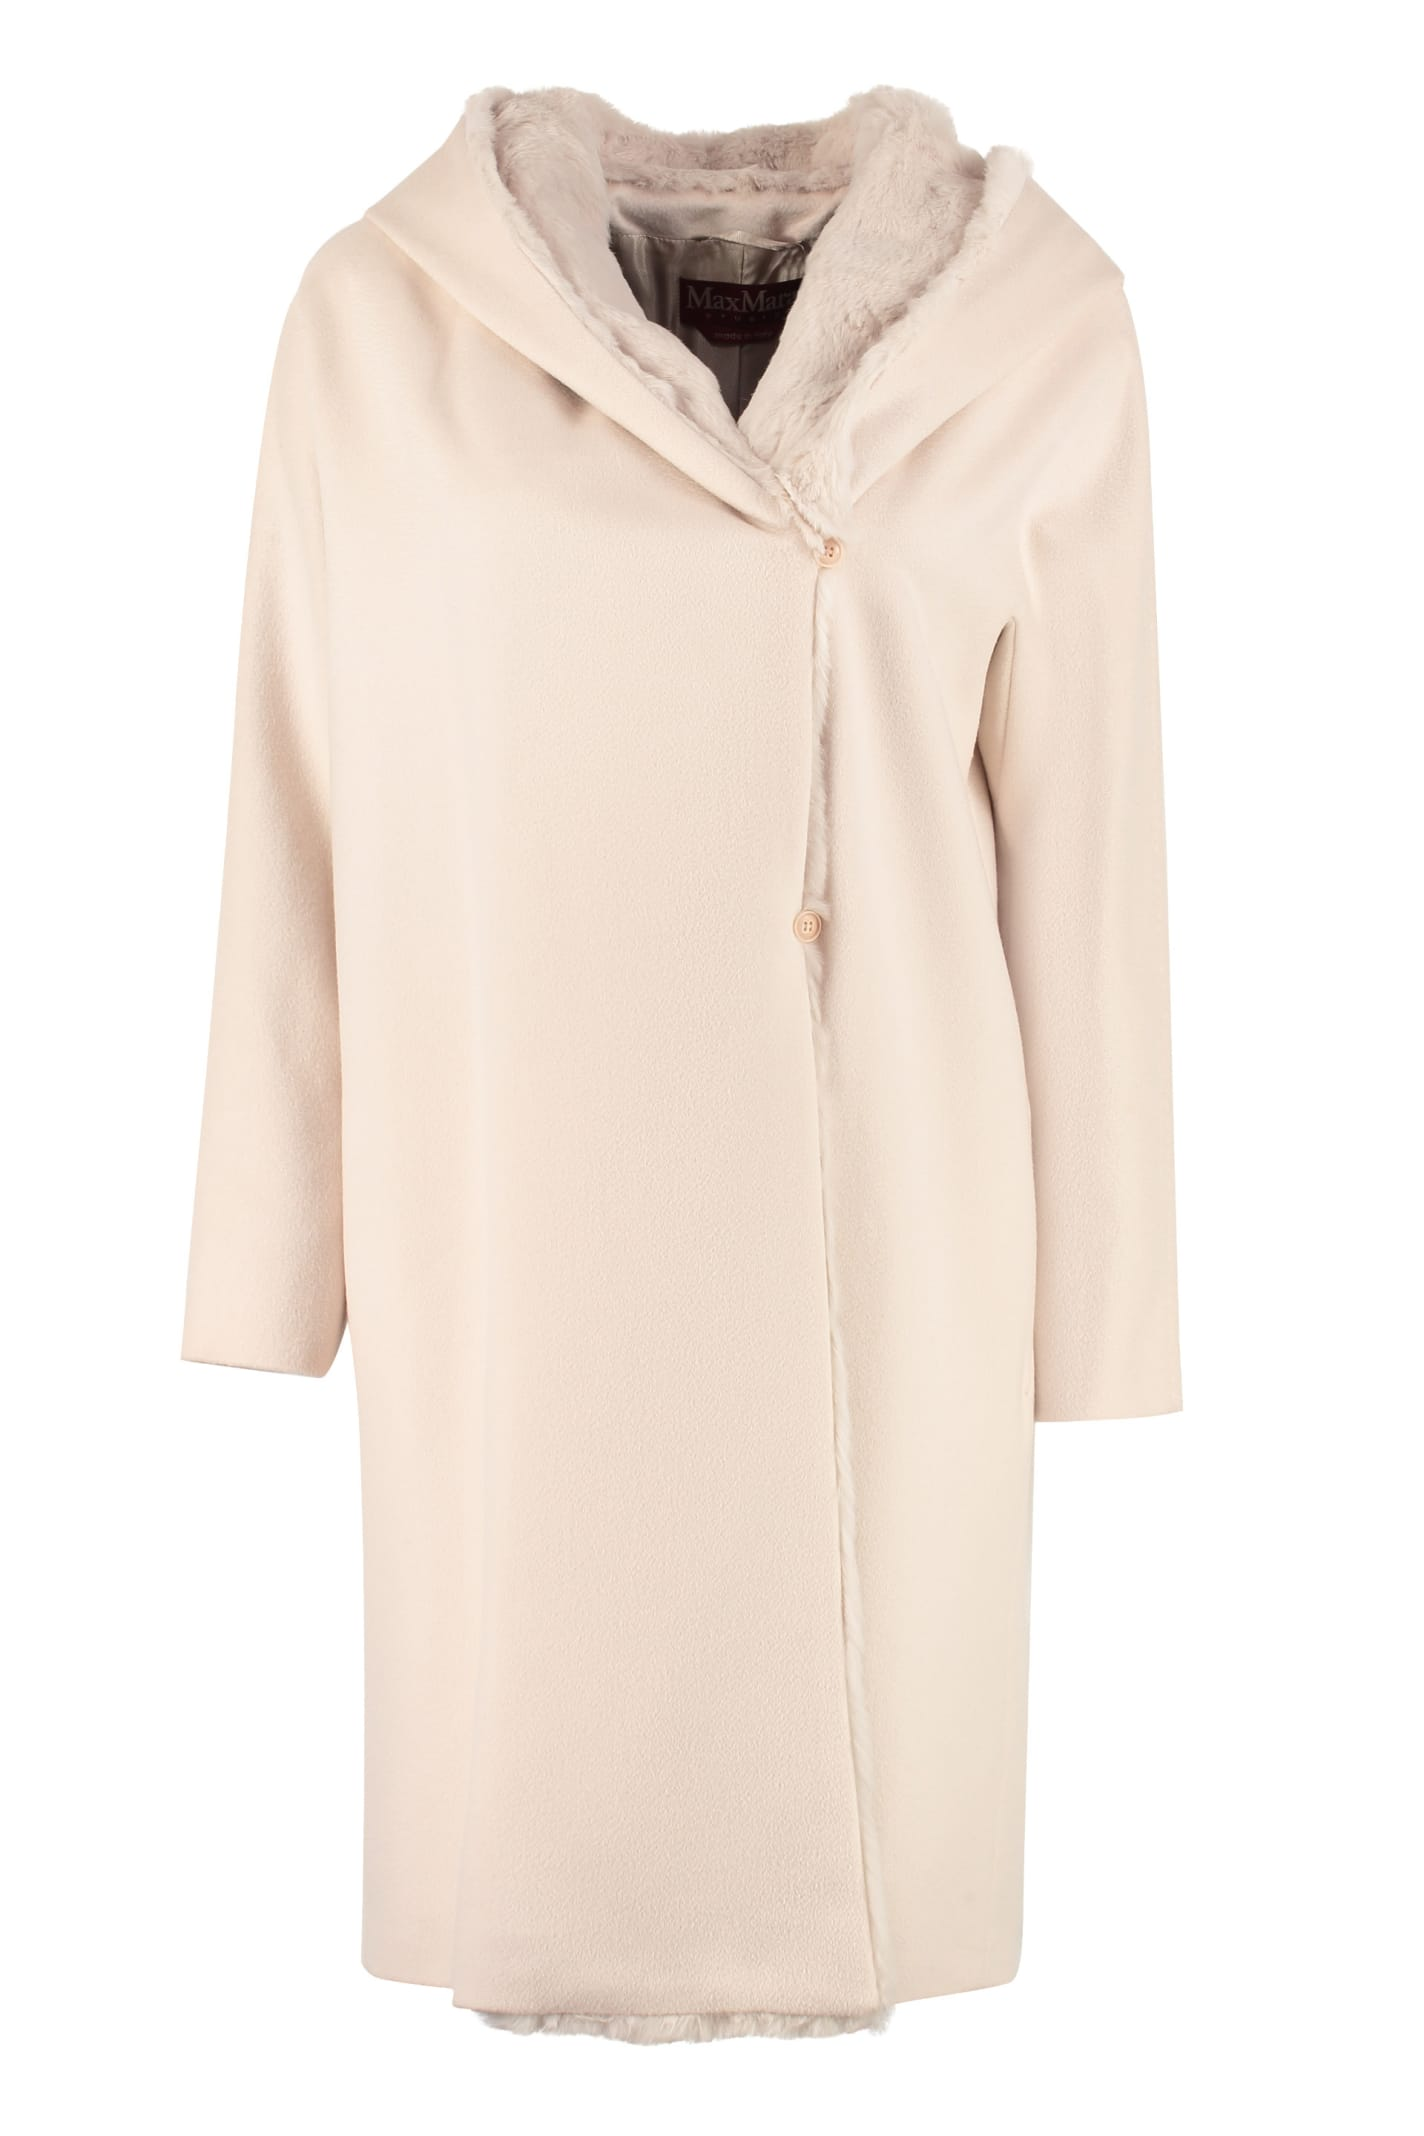 Max Mara Studio Ceylon Virgin Wool Coat With Fur